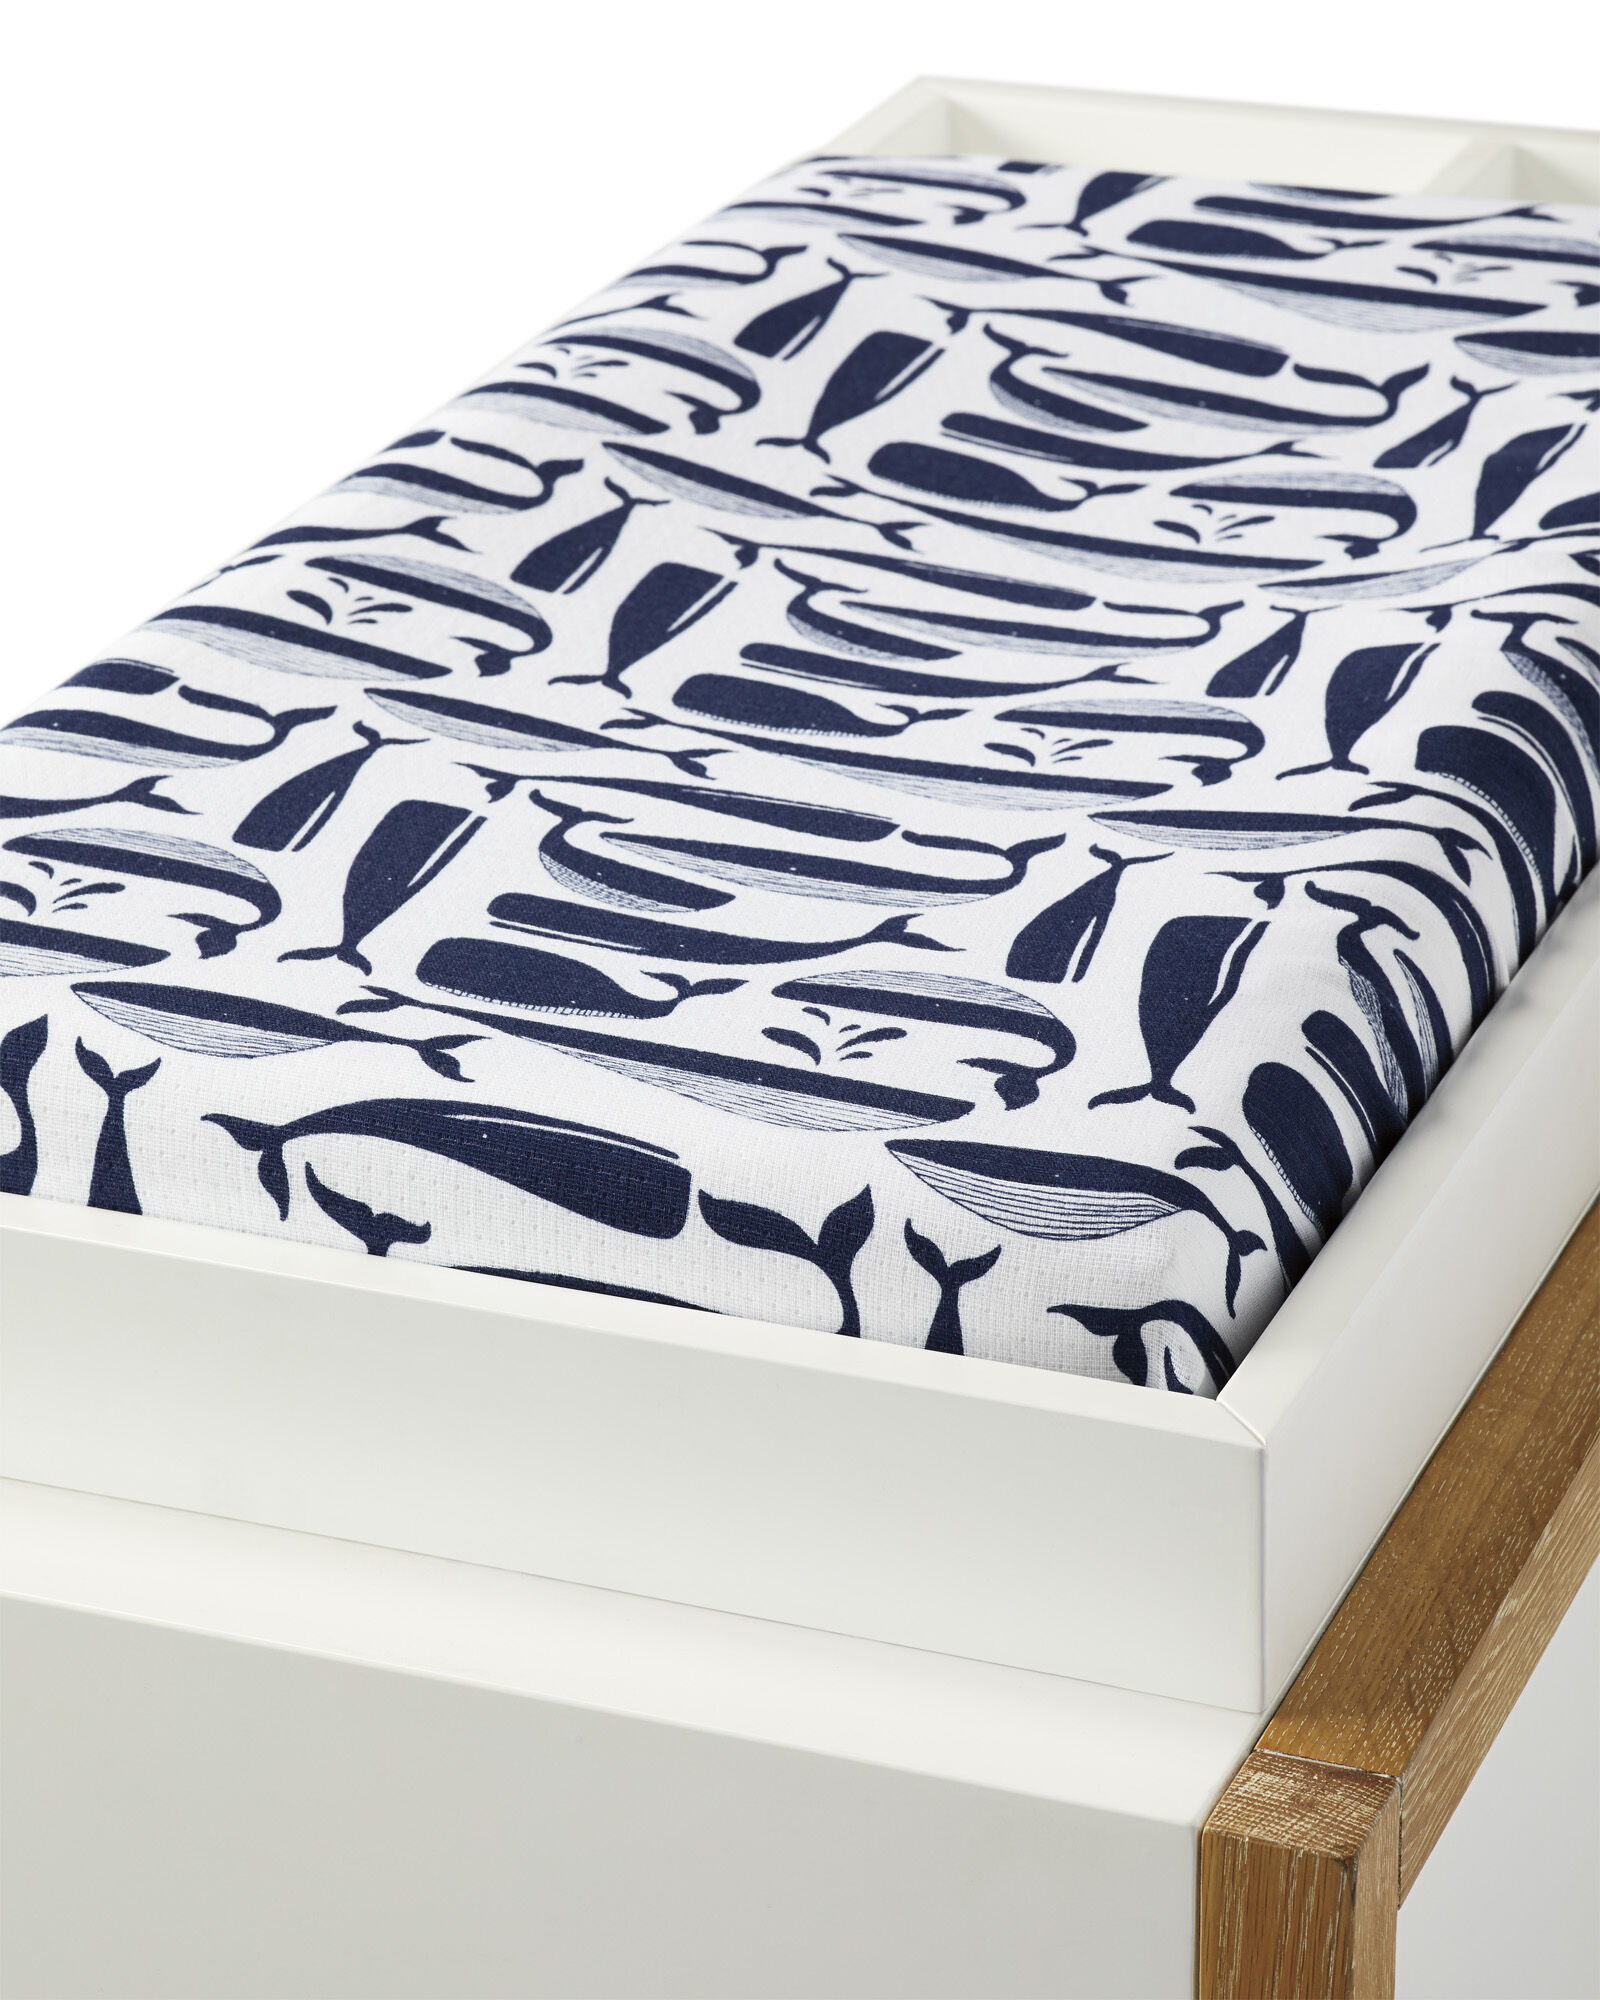 Melville Changing Pad Cover,